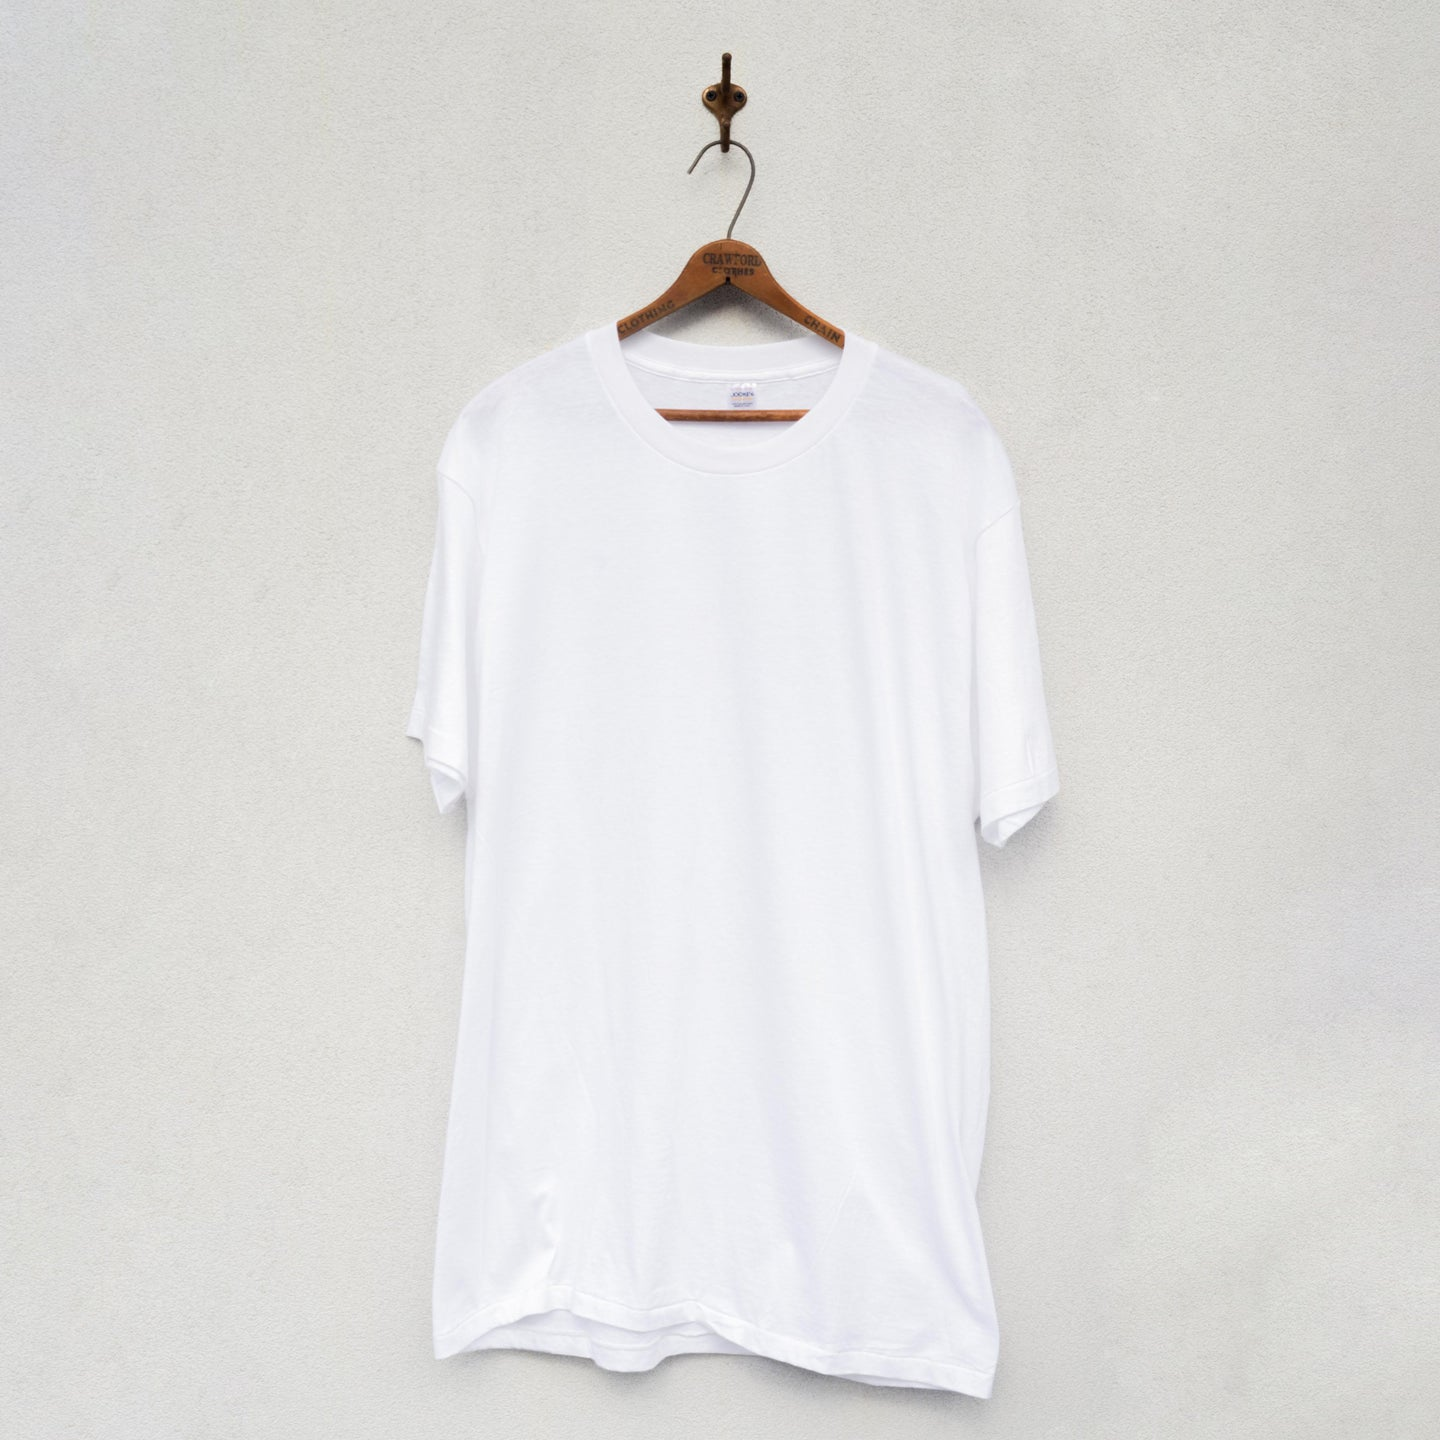 Jockey - All Cotton Crew Neck Pack T shirt